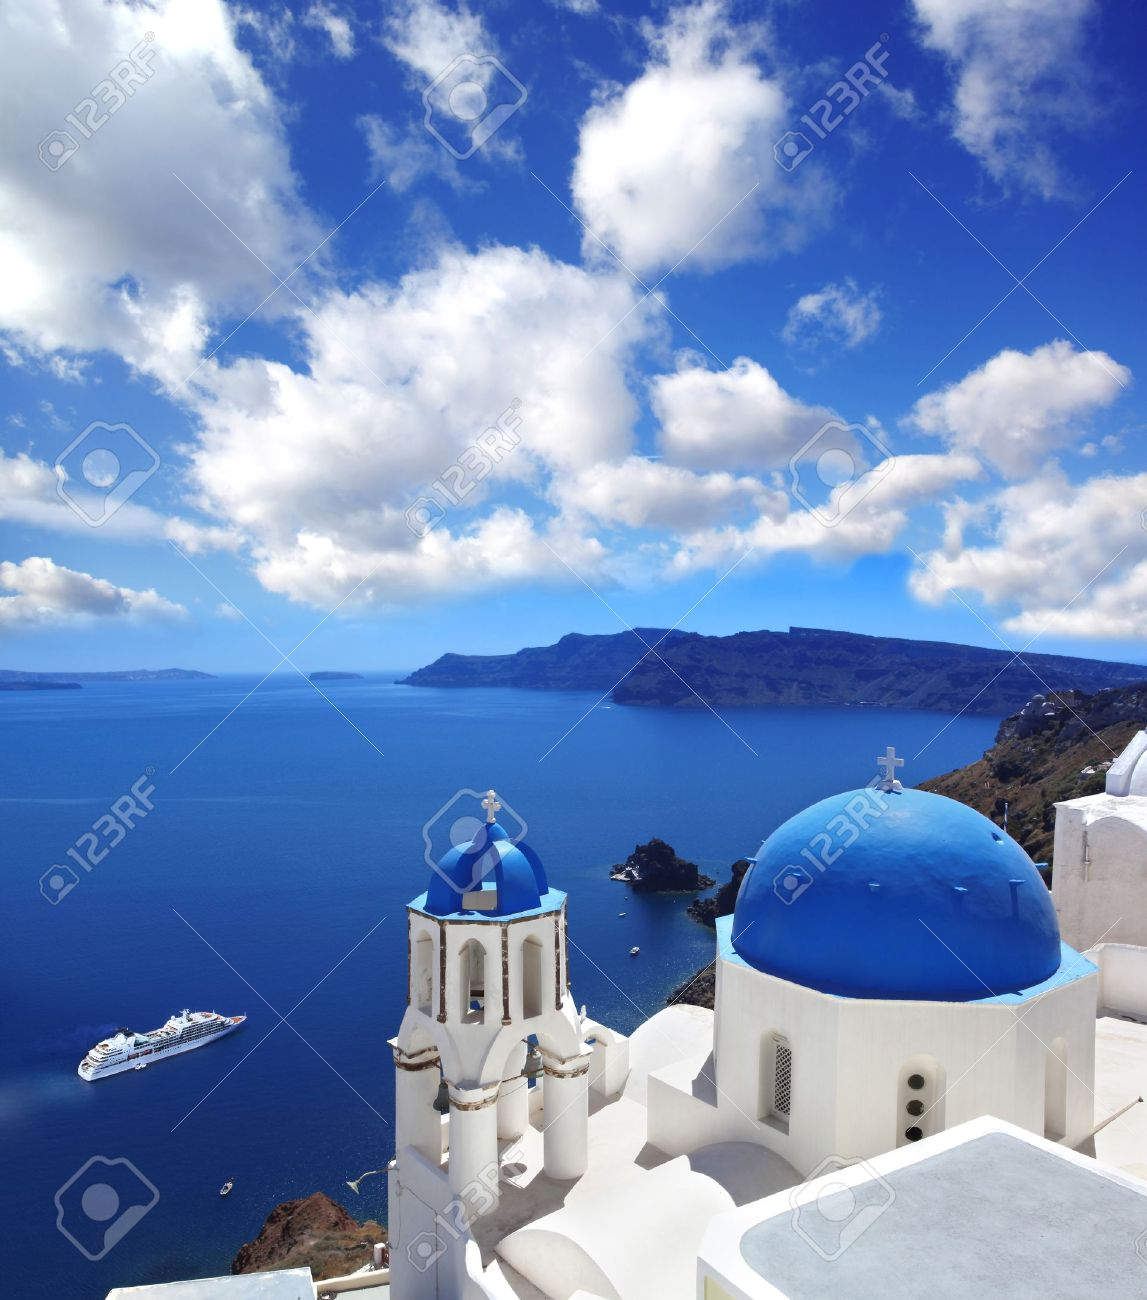 Amazing Santorini with churches and sea view in Greece - 18105725